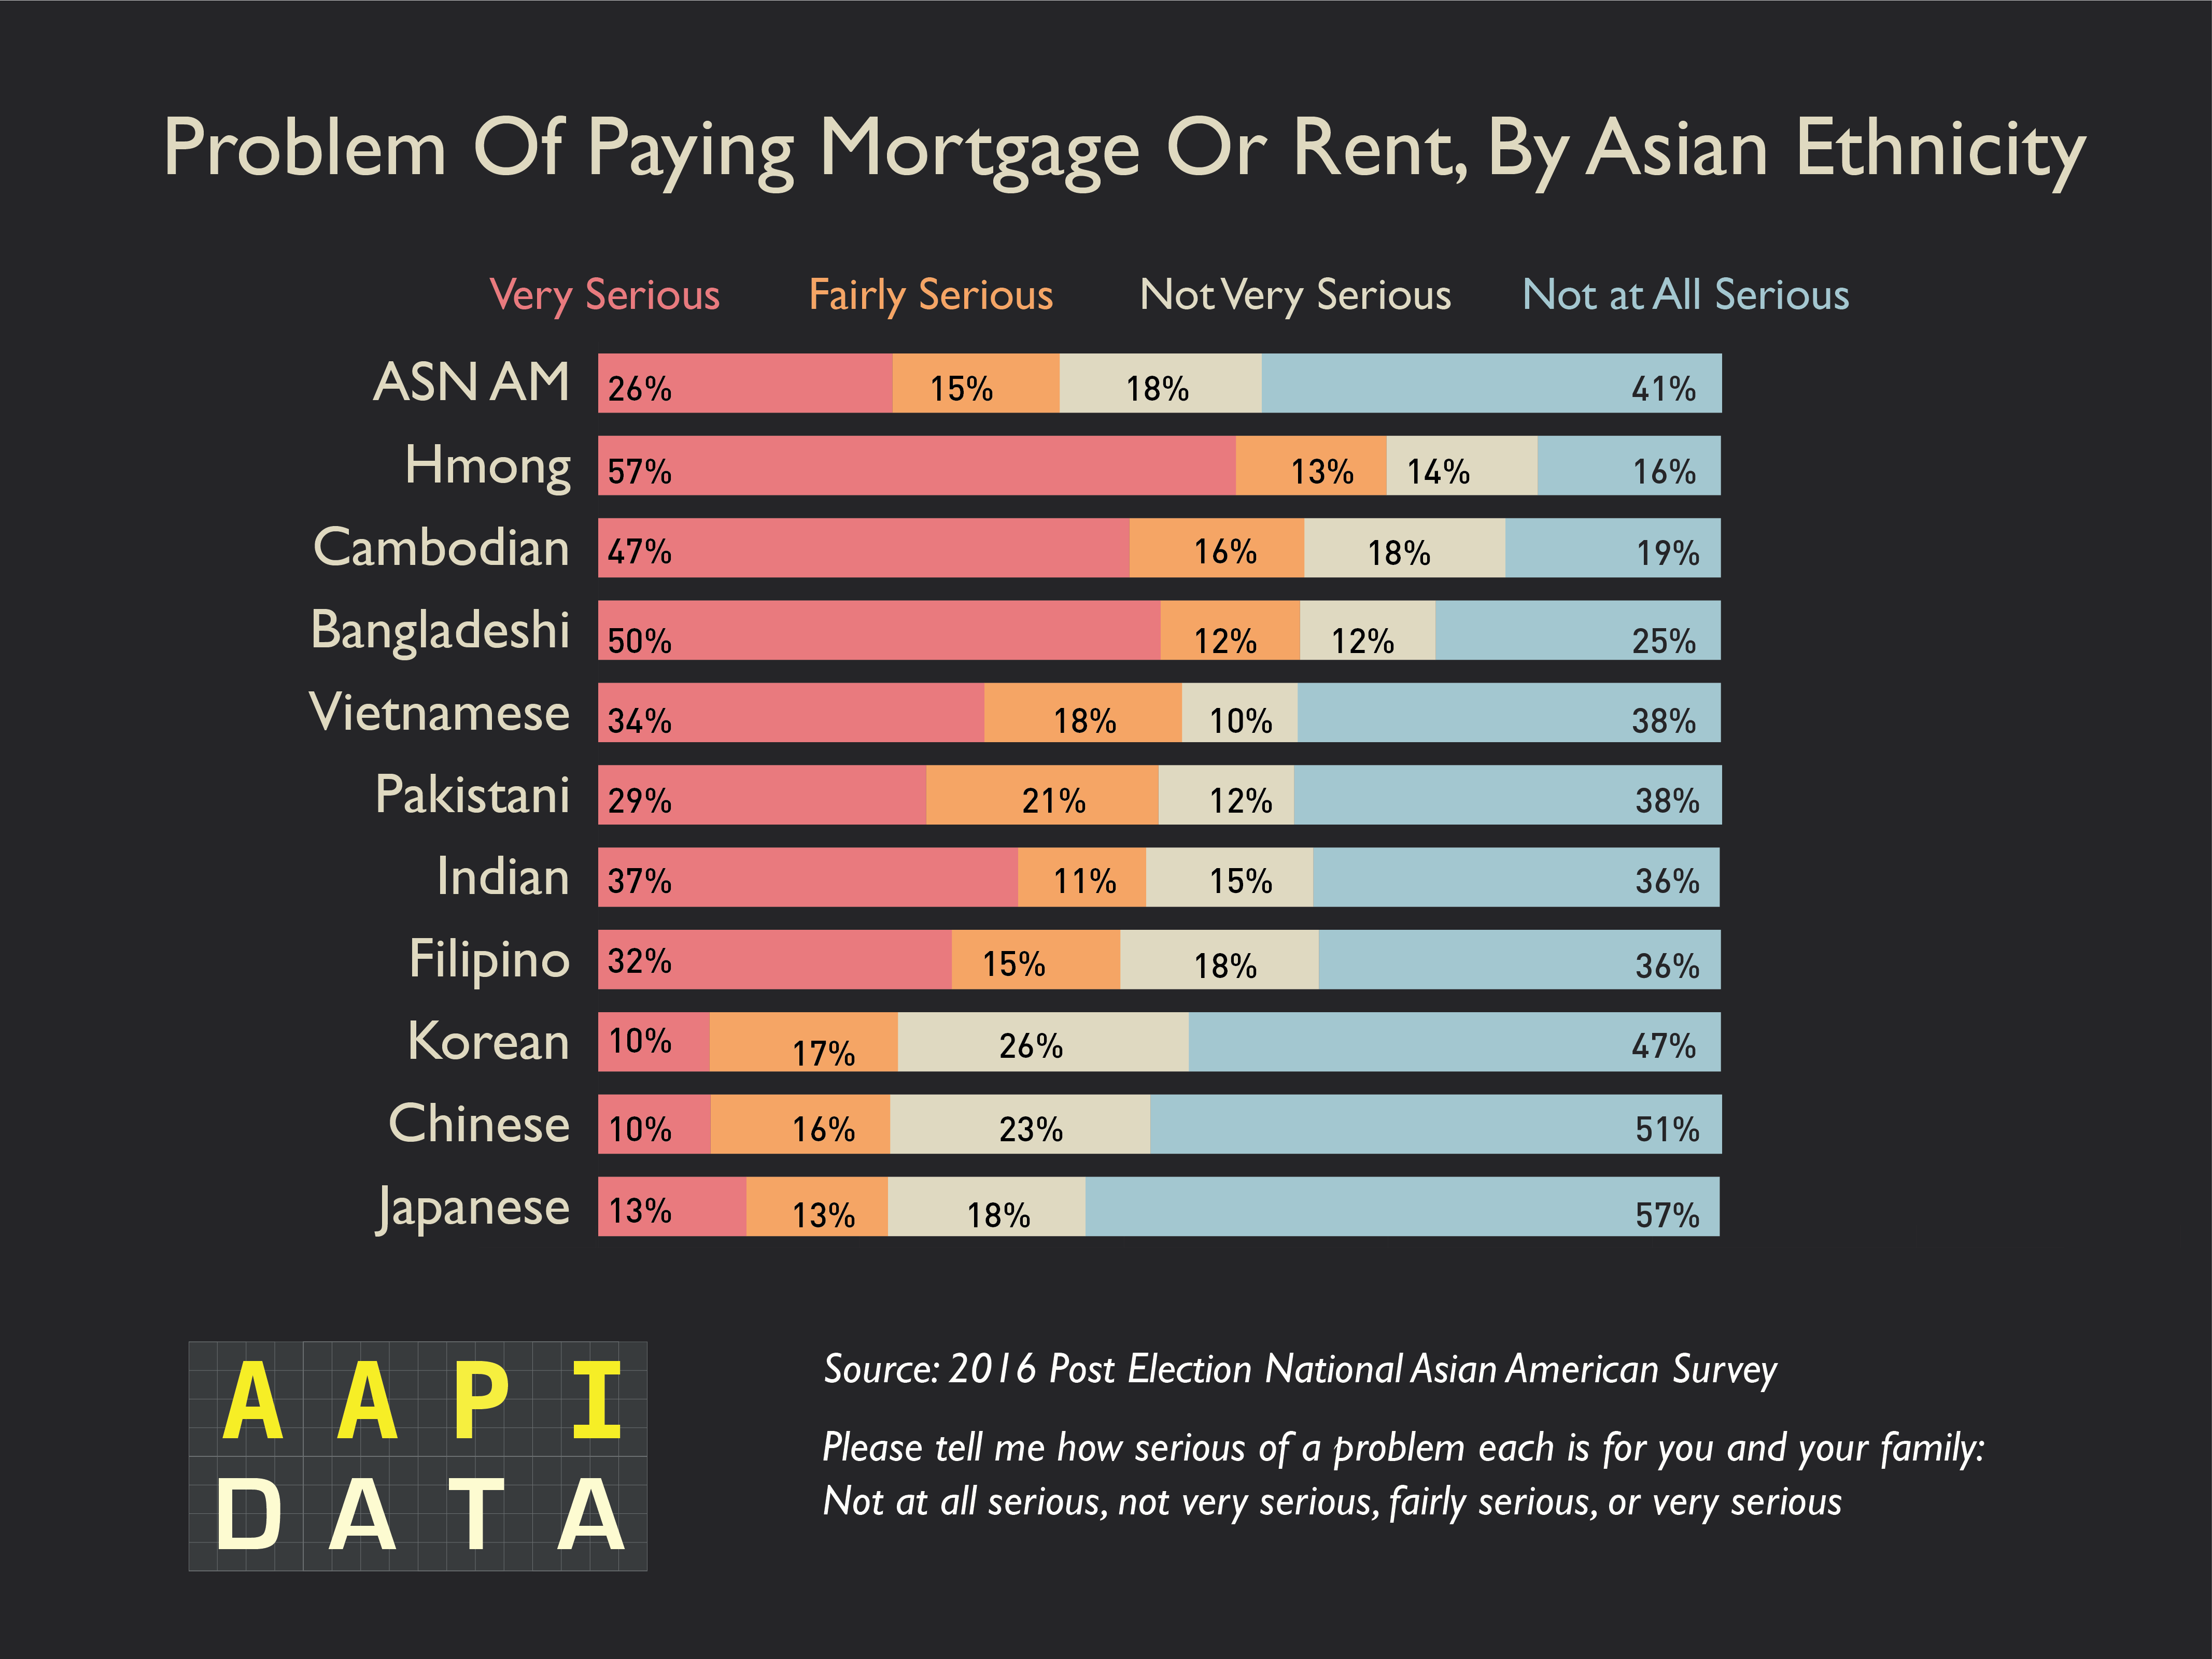 NAAS16-Ethnicity_problem_mortgage